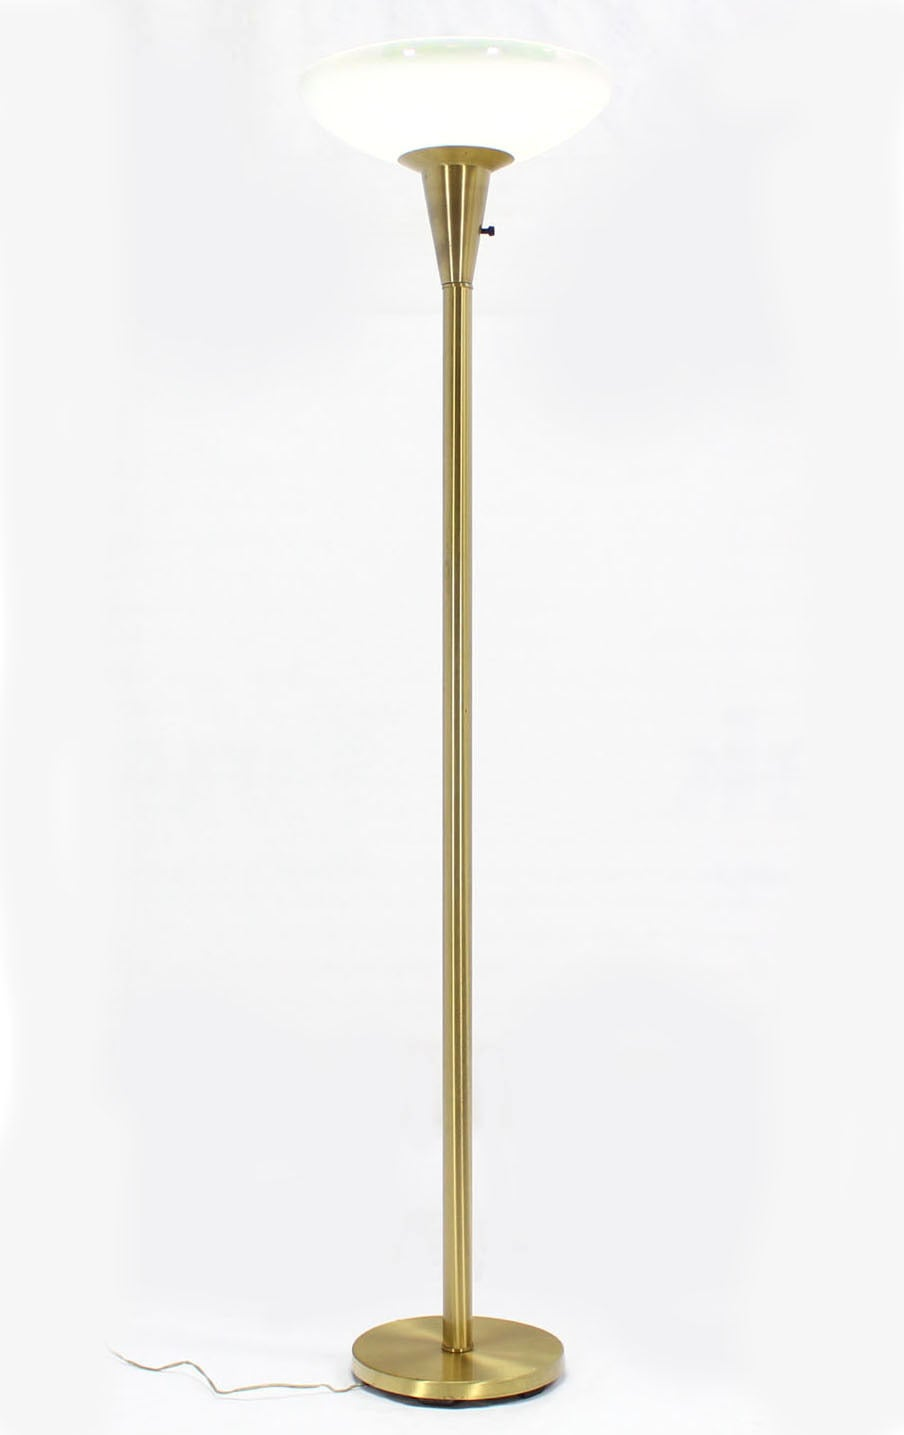 brass torchiere floor lamp with iridescent glass shade at 1stdibs. Black Bedroom Furniture Sets. Home Design Ideas